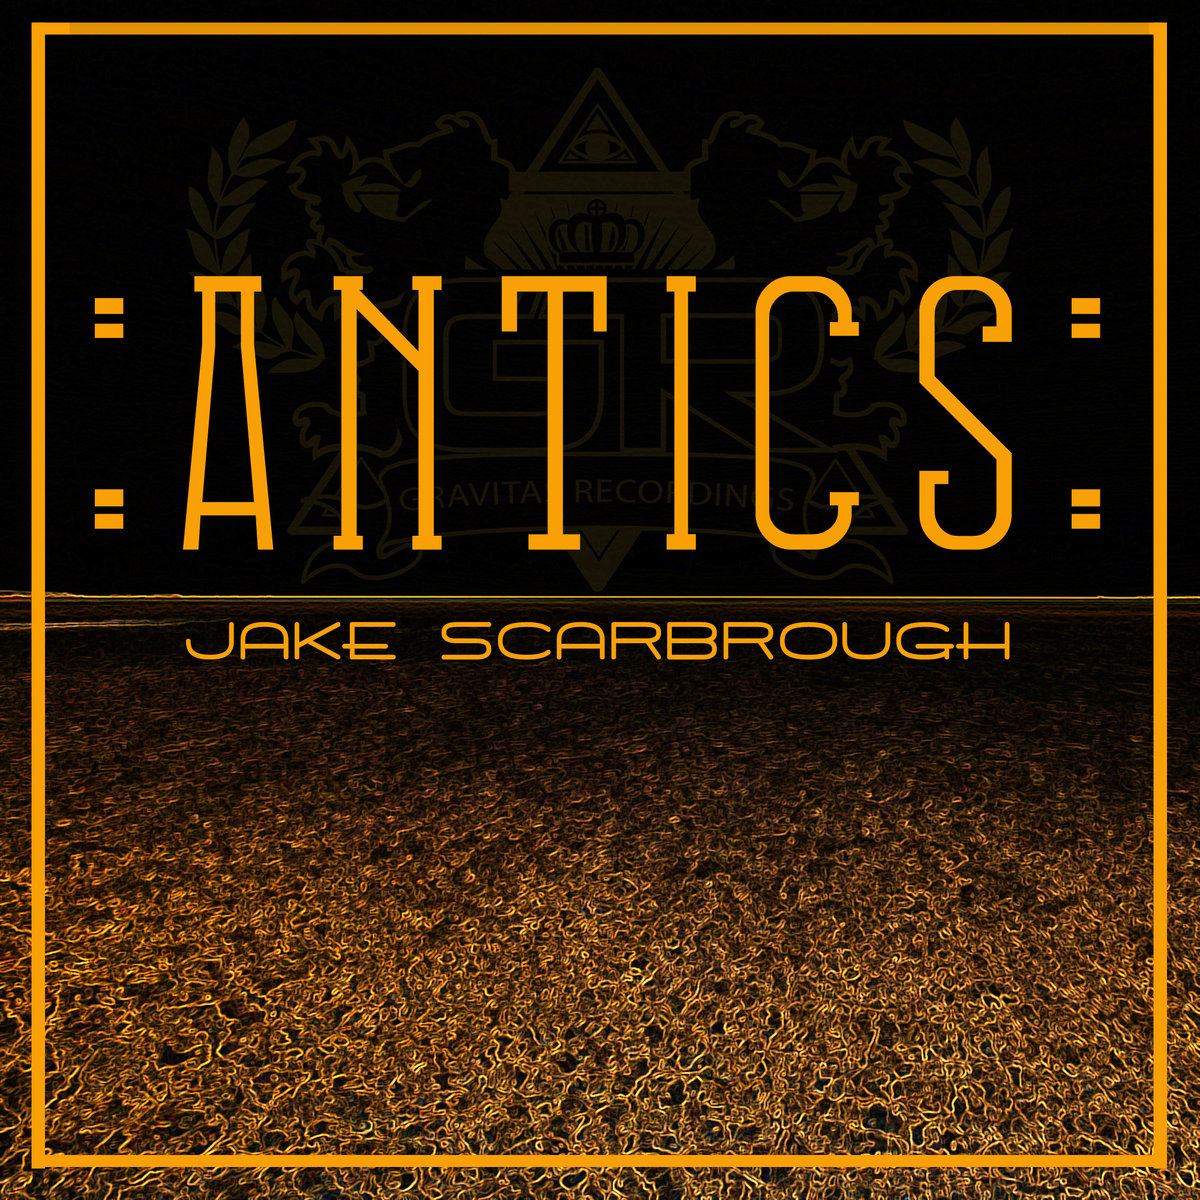 Jake Scarbrough - Here Comes The One @ 'Antics' album (Austin)